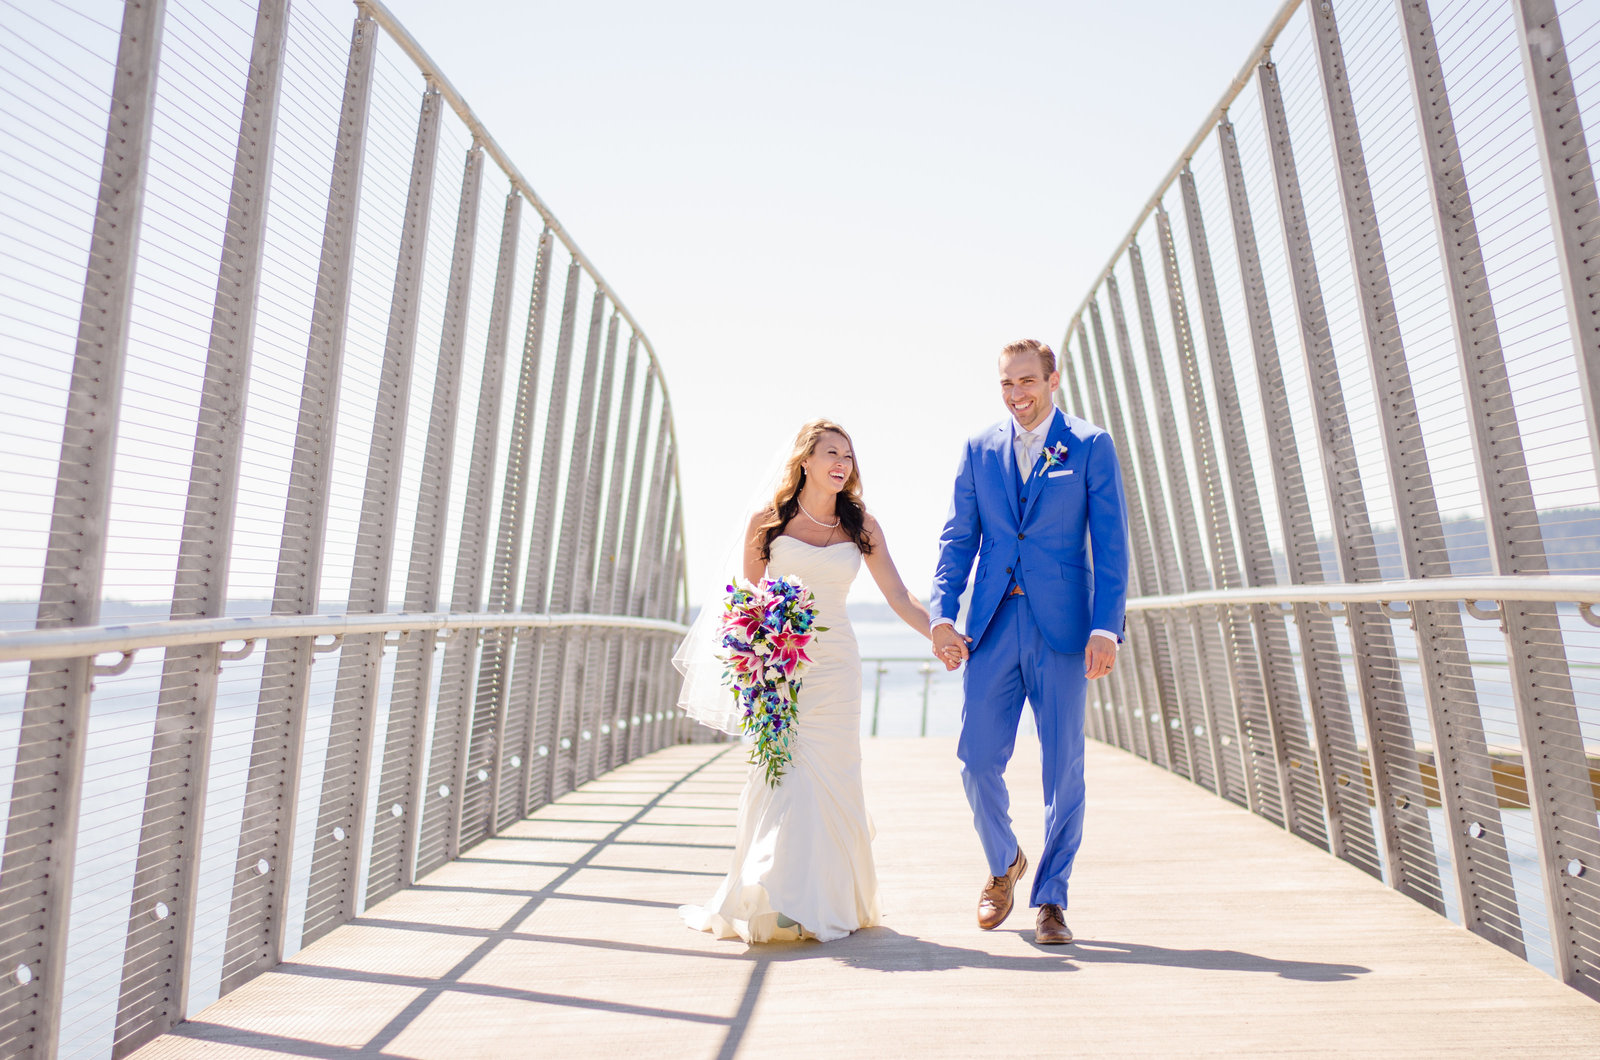 Couple holding hands on bridge